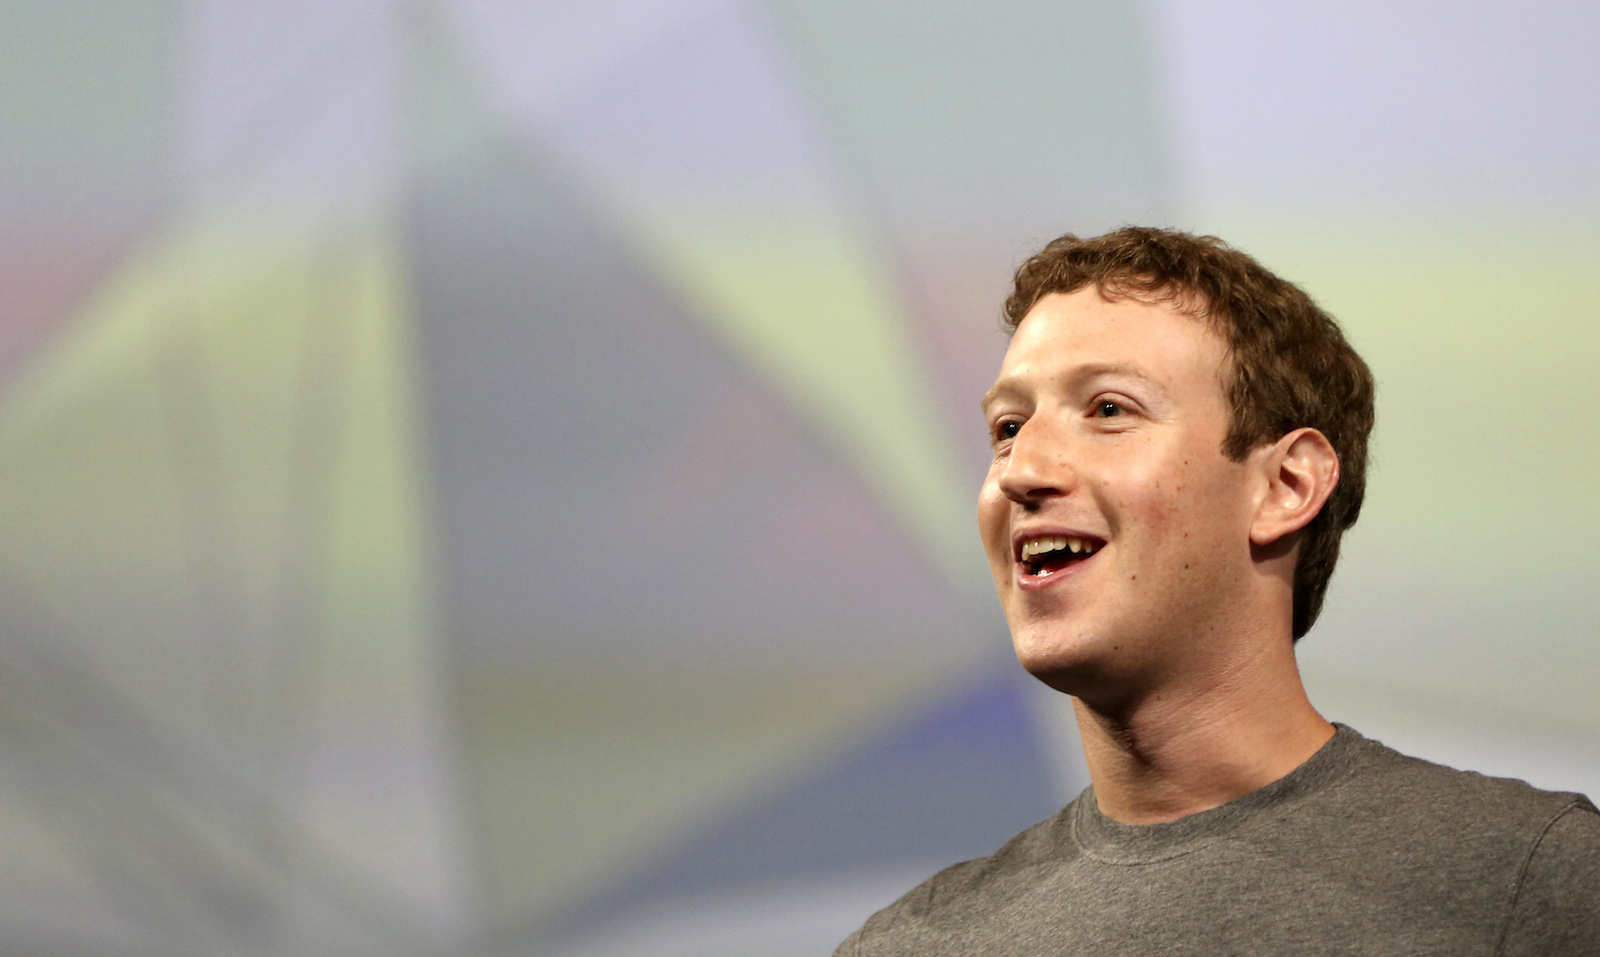 Facebook CEO Mark Zuckerberg addresses the crowd gathered during his keynote address at Facebook's f8 developers conference in San Francisco